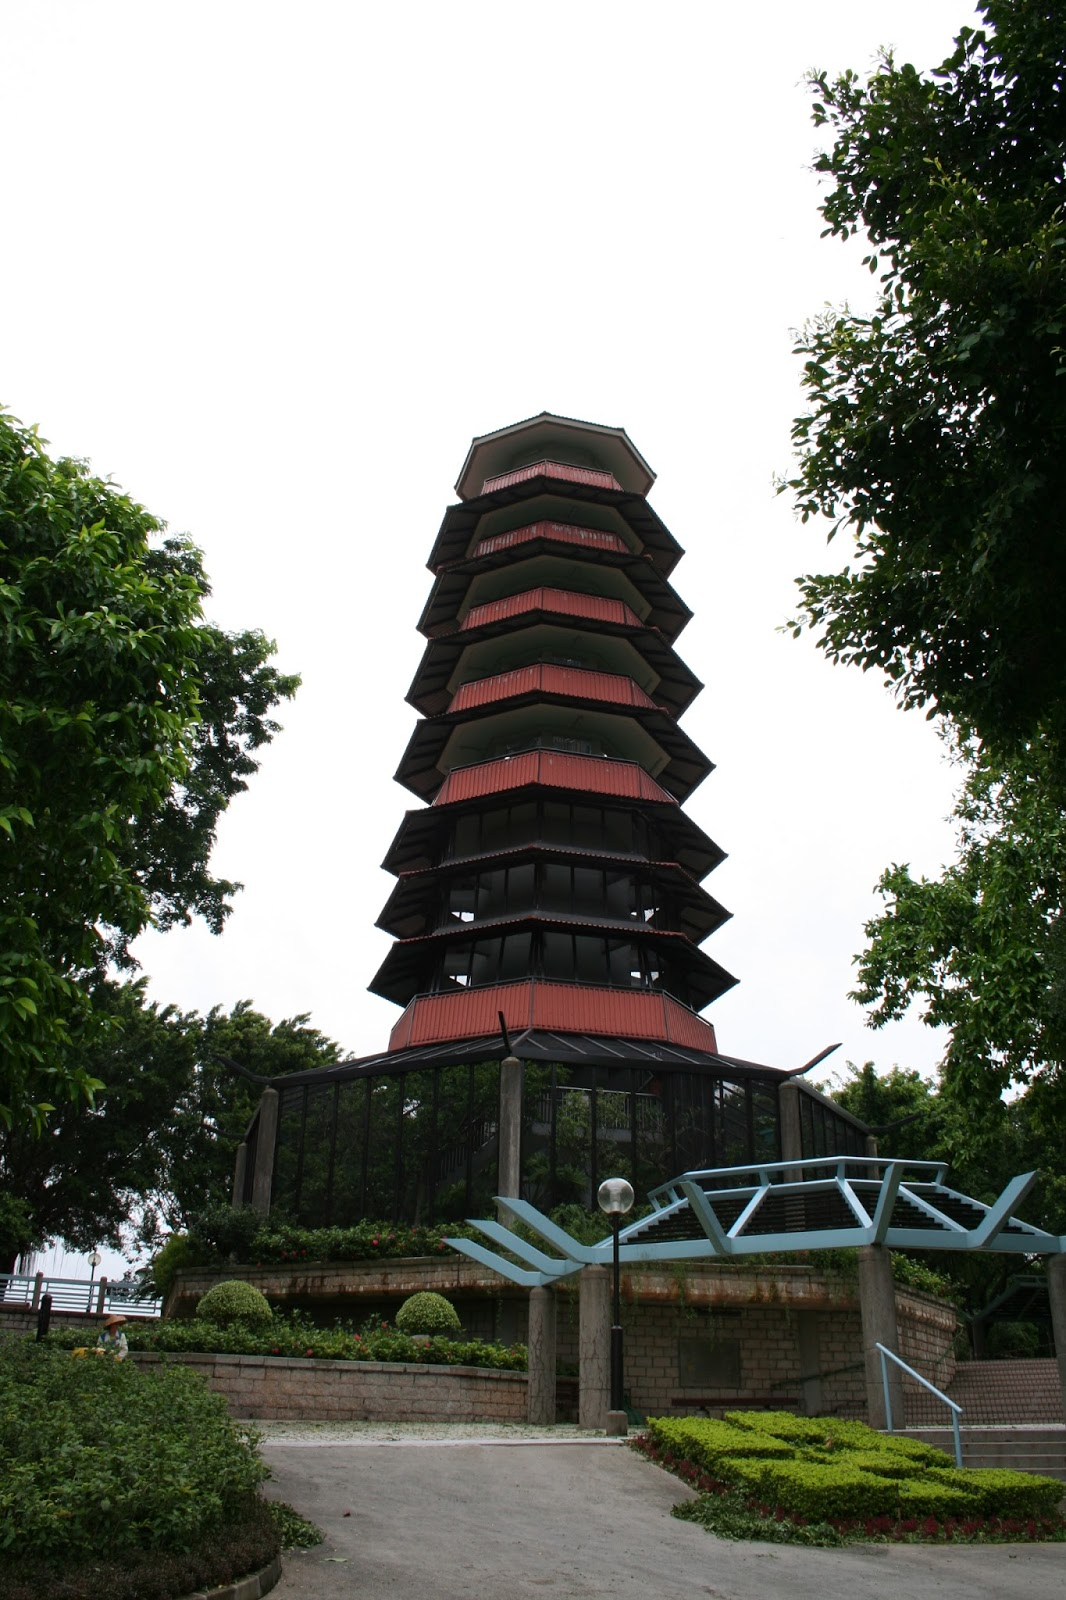 REASONABLE and UNEXPECTABLE: 元朗公園百鳥塔擋邪